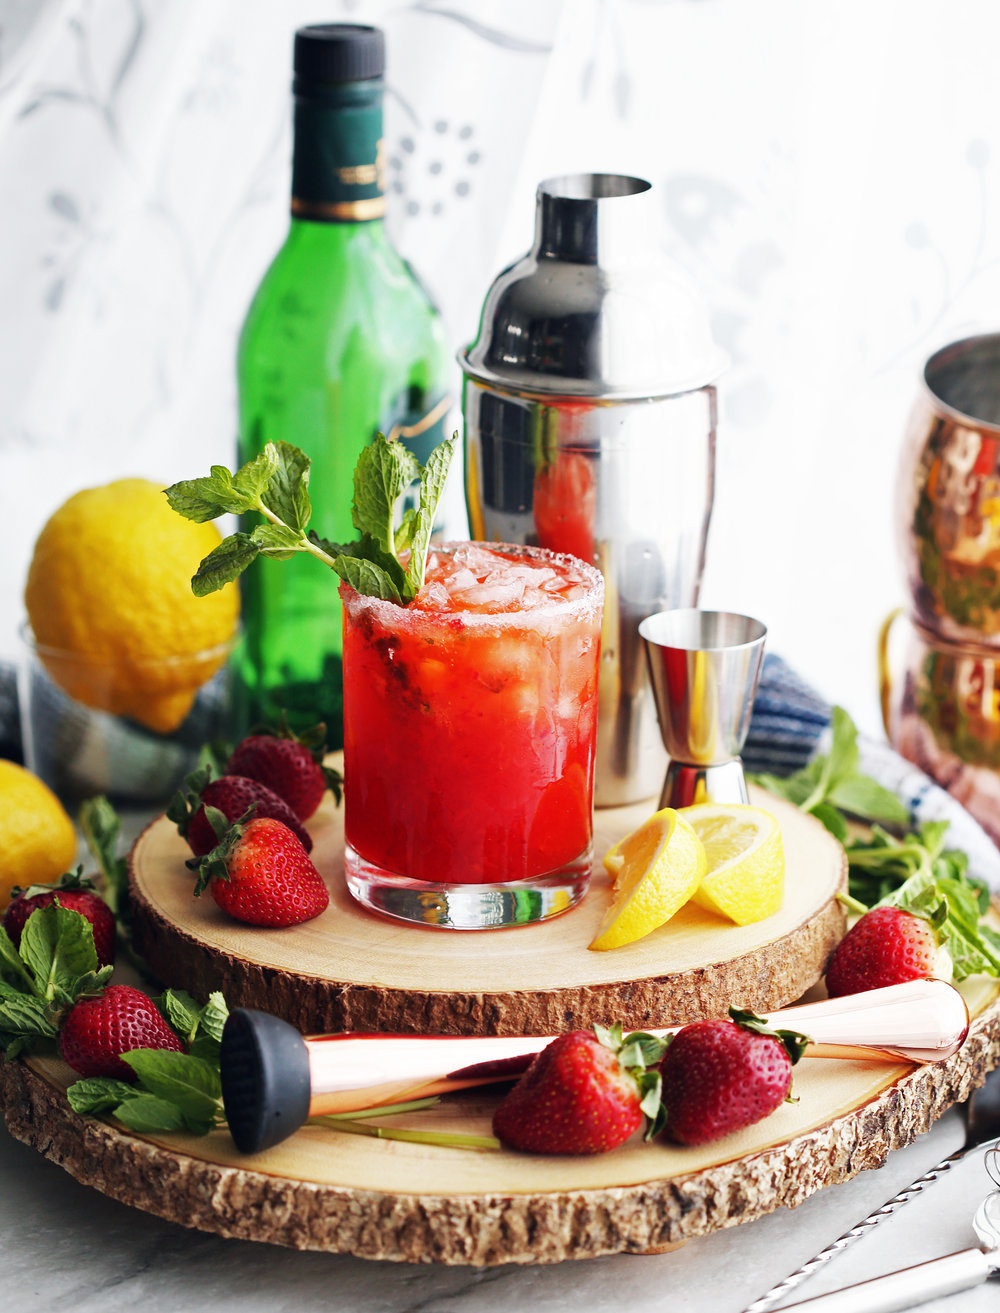 A glass of Mint Strawberry Whisky Smash drink that's sitting on two wooden platters and surrounded by a cocktail set, lemons, and strawberries.